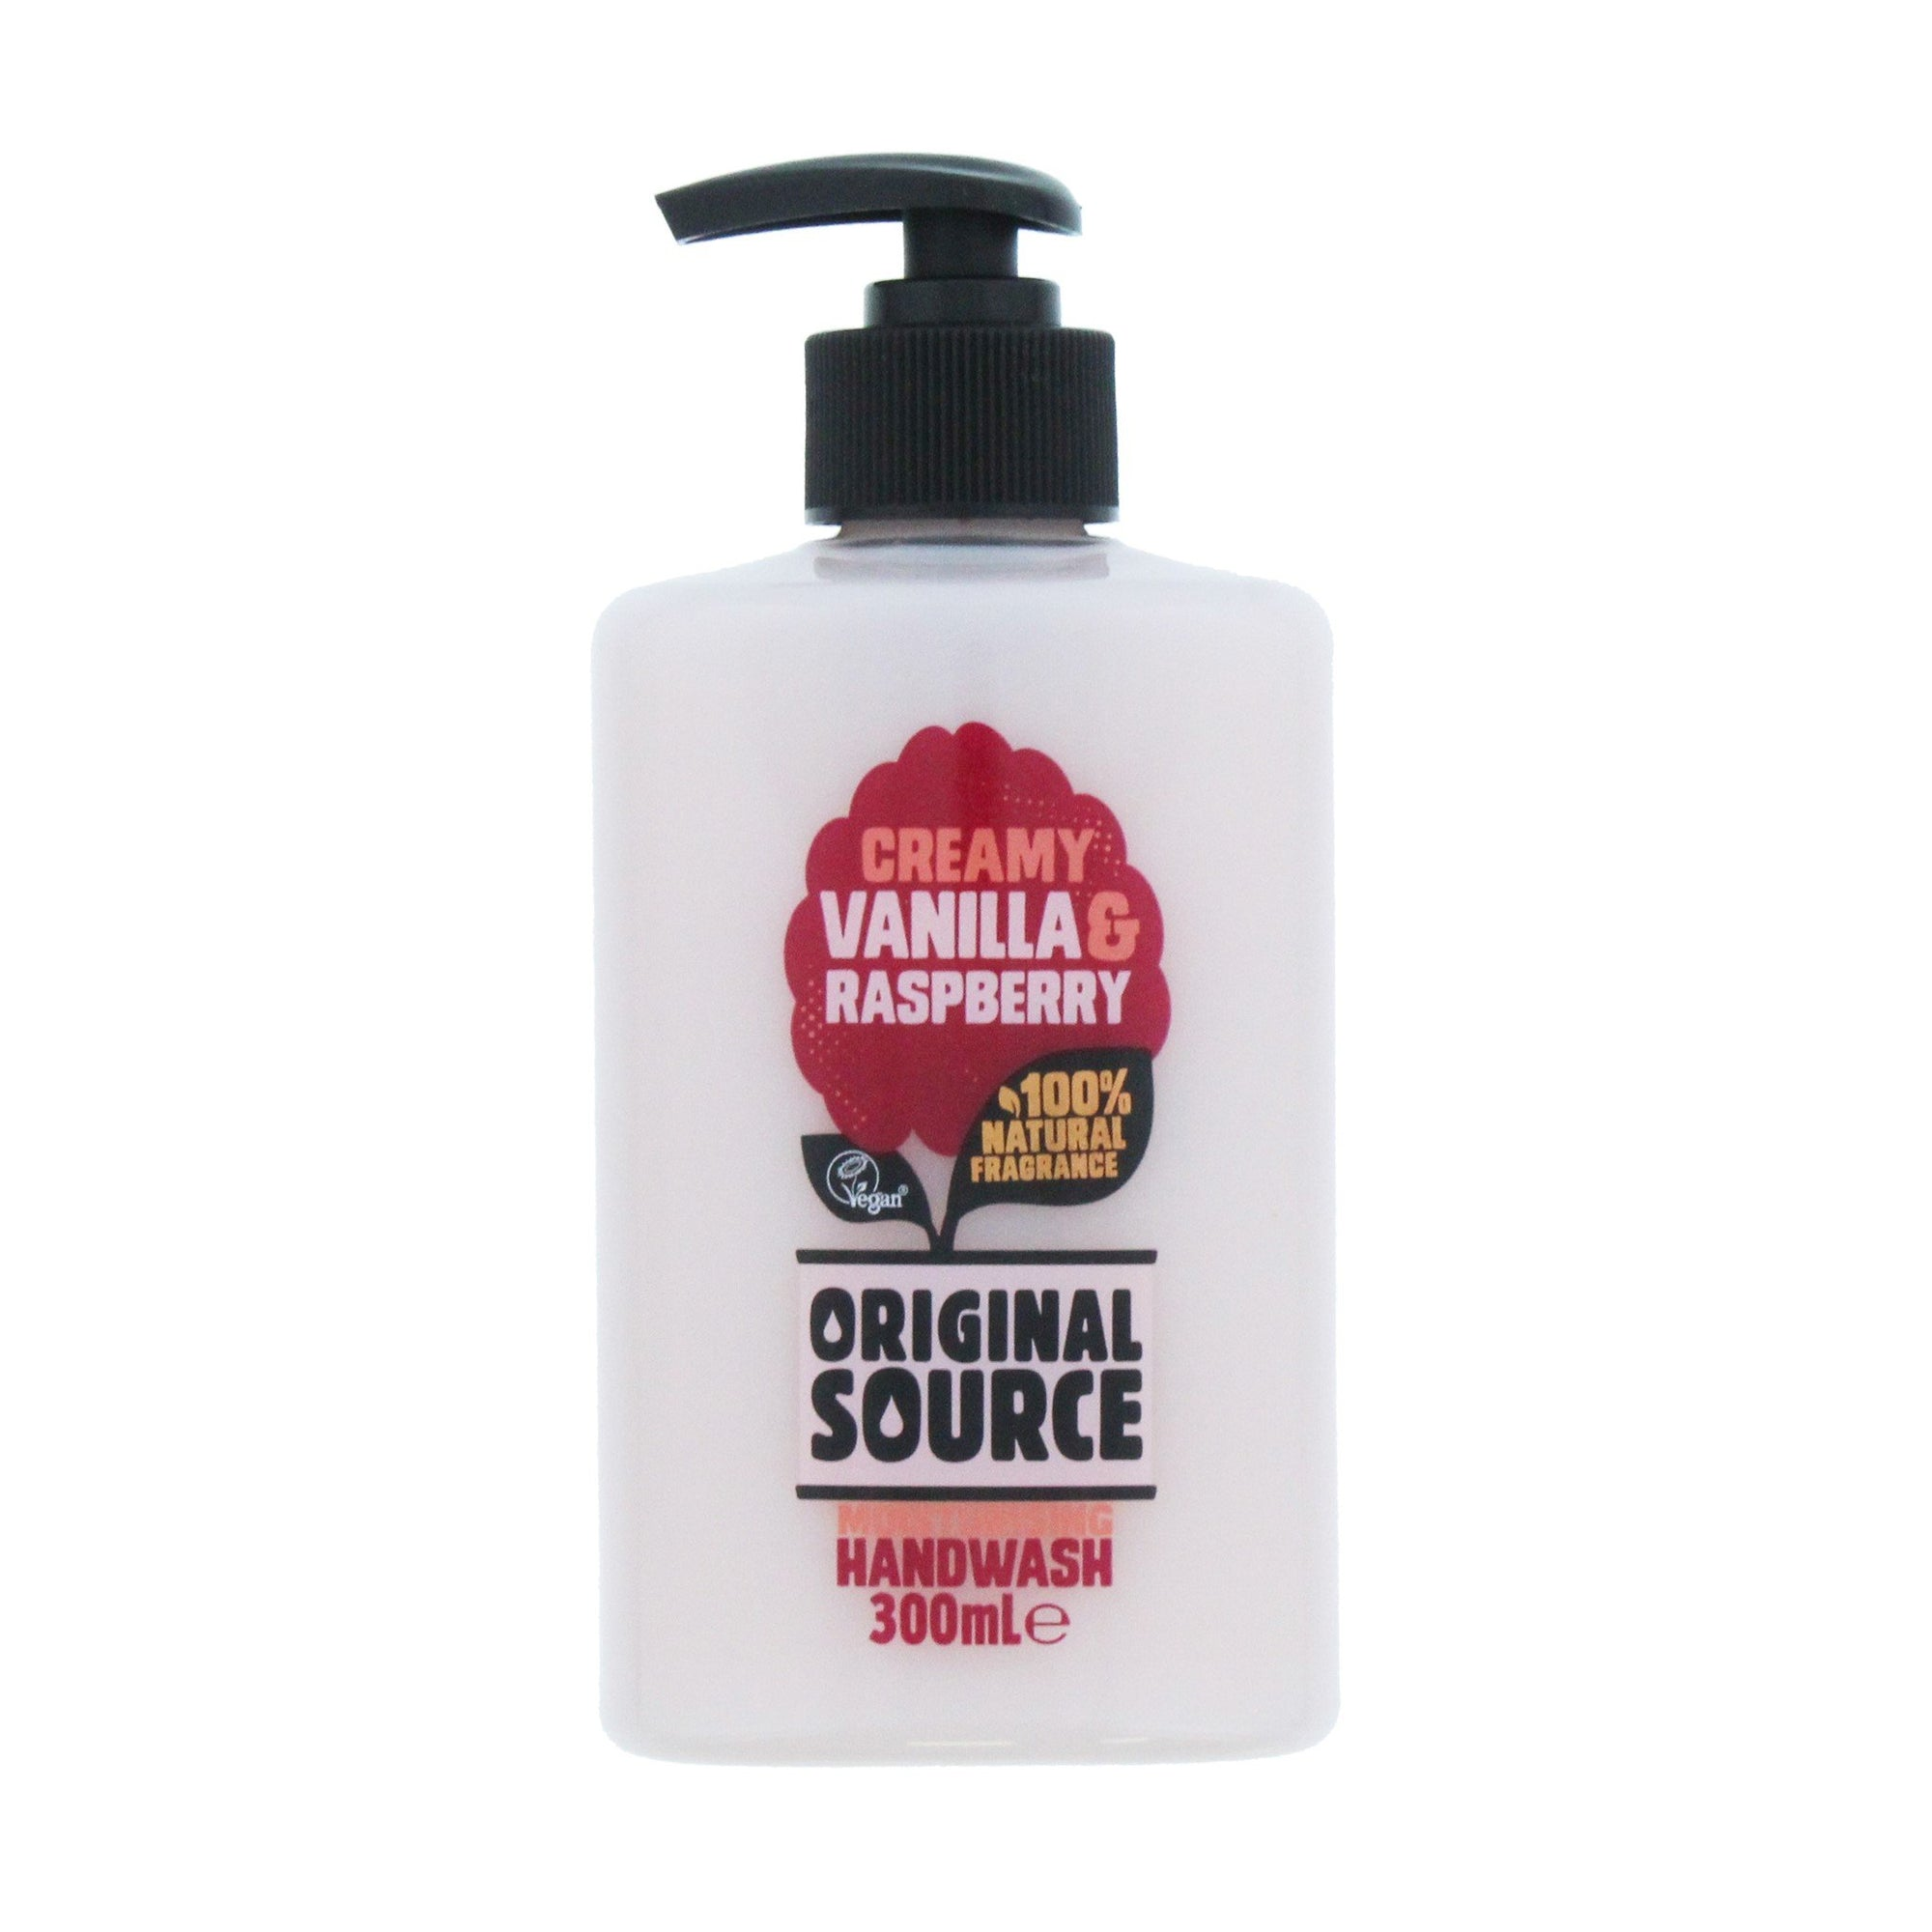 Original Source Handwash Vanilla & Raspberry 300ml